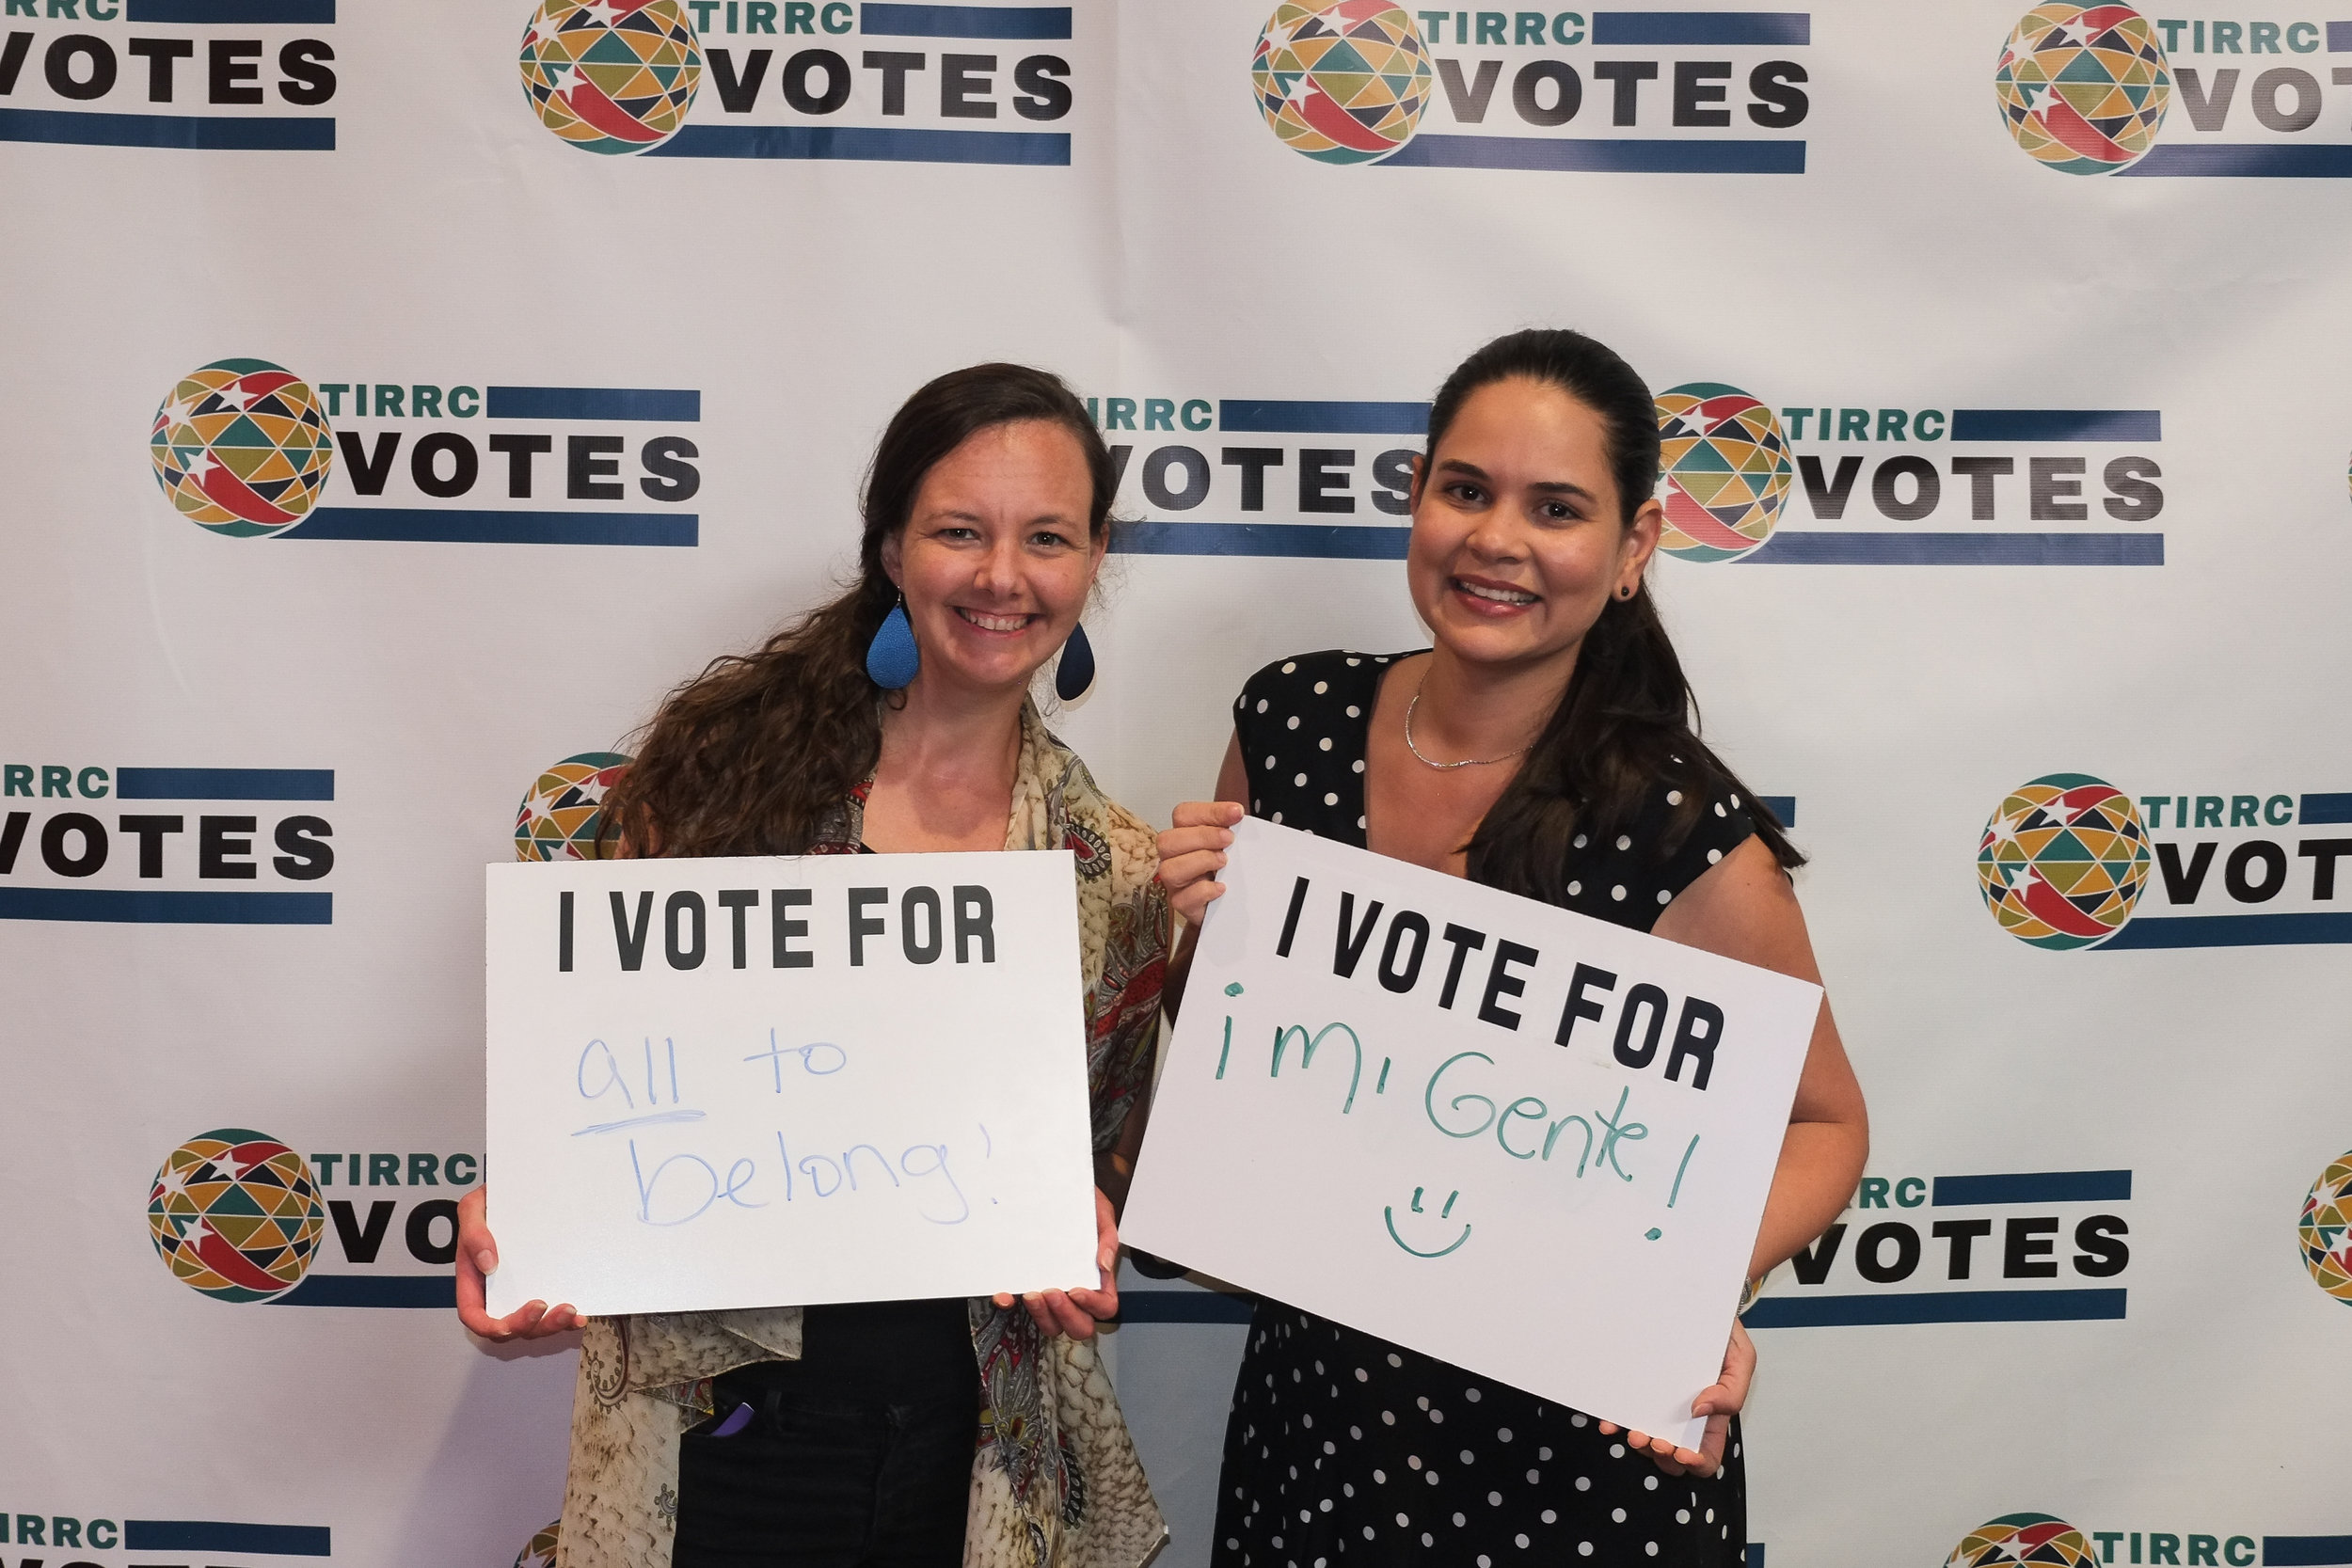 TIRRCVotes-PhotoBooth-21.jpg